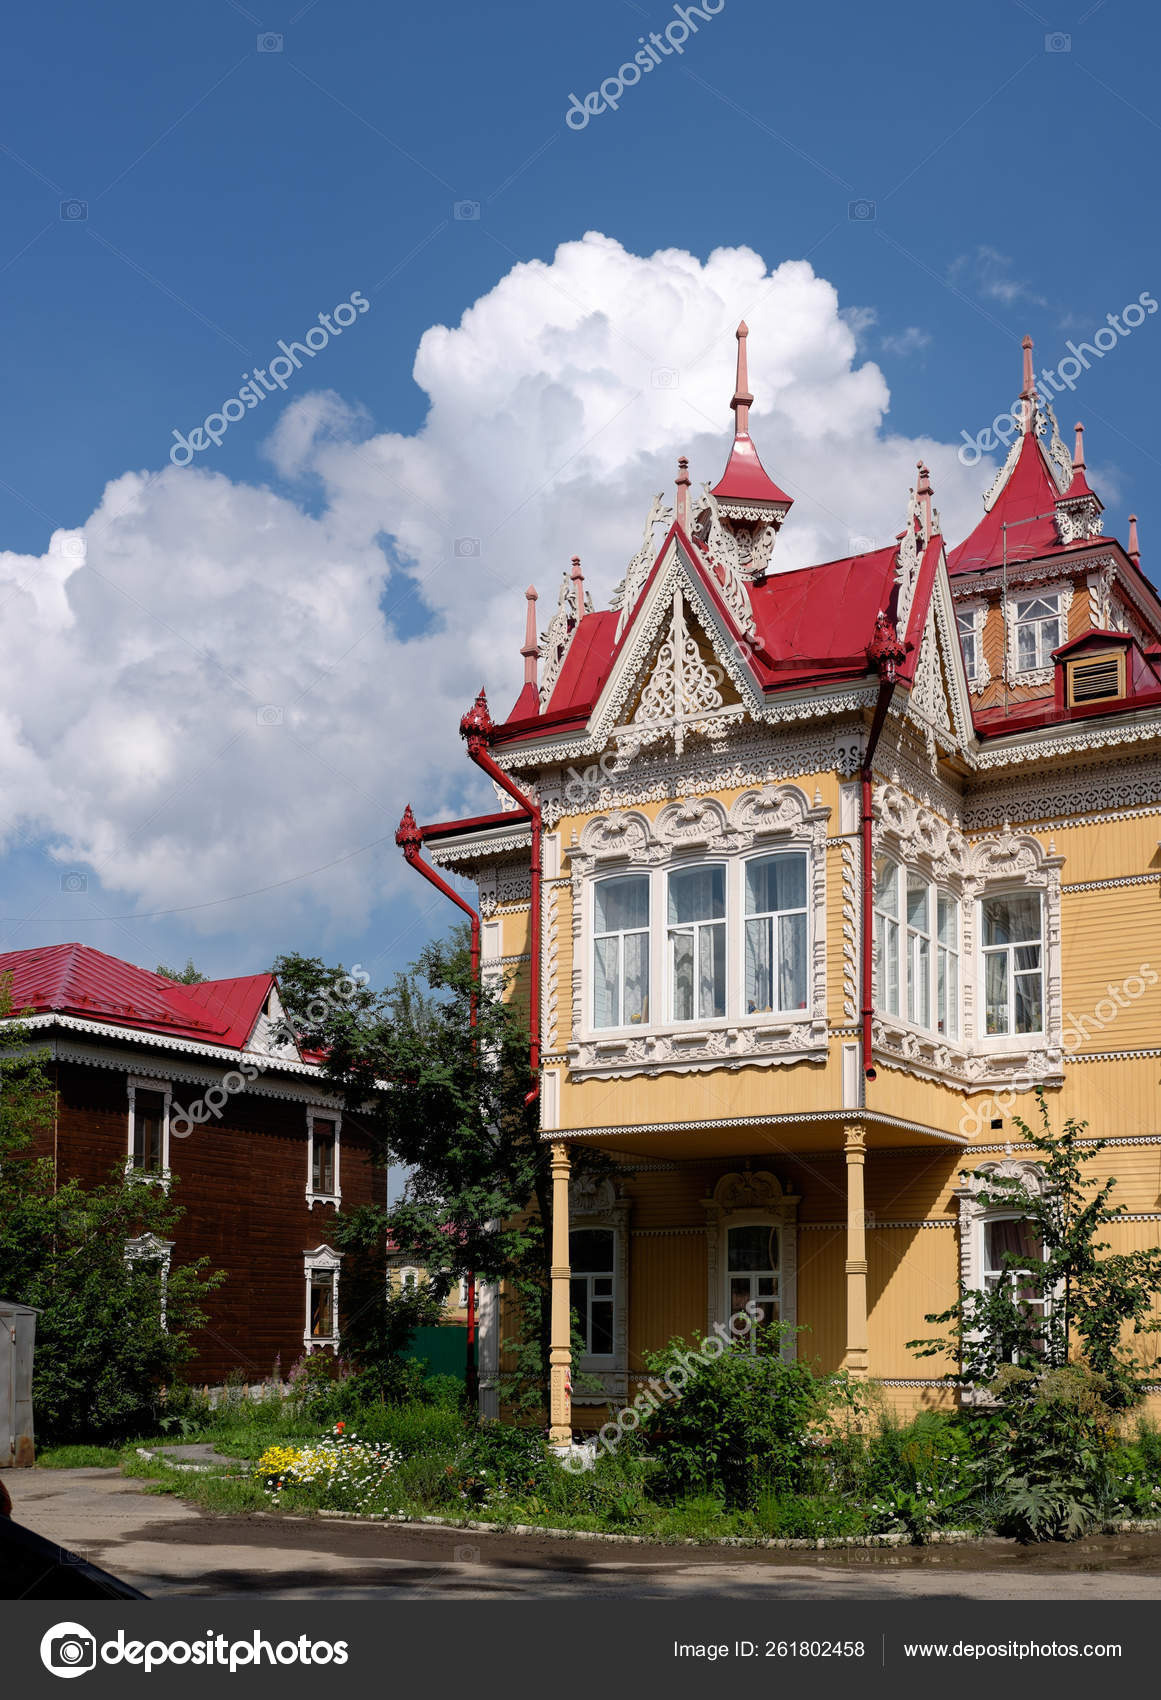 depositphotos stock photo one most beautiful wooden houses